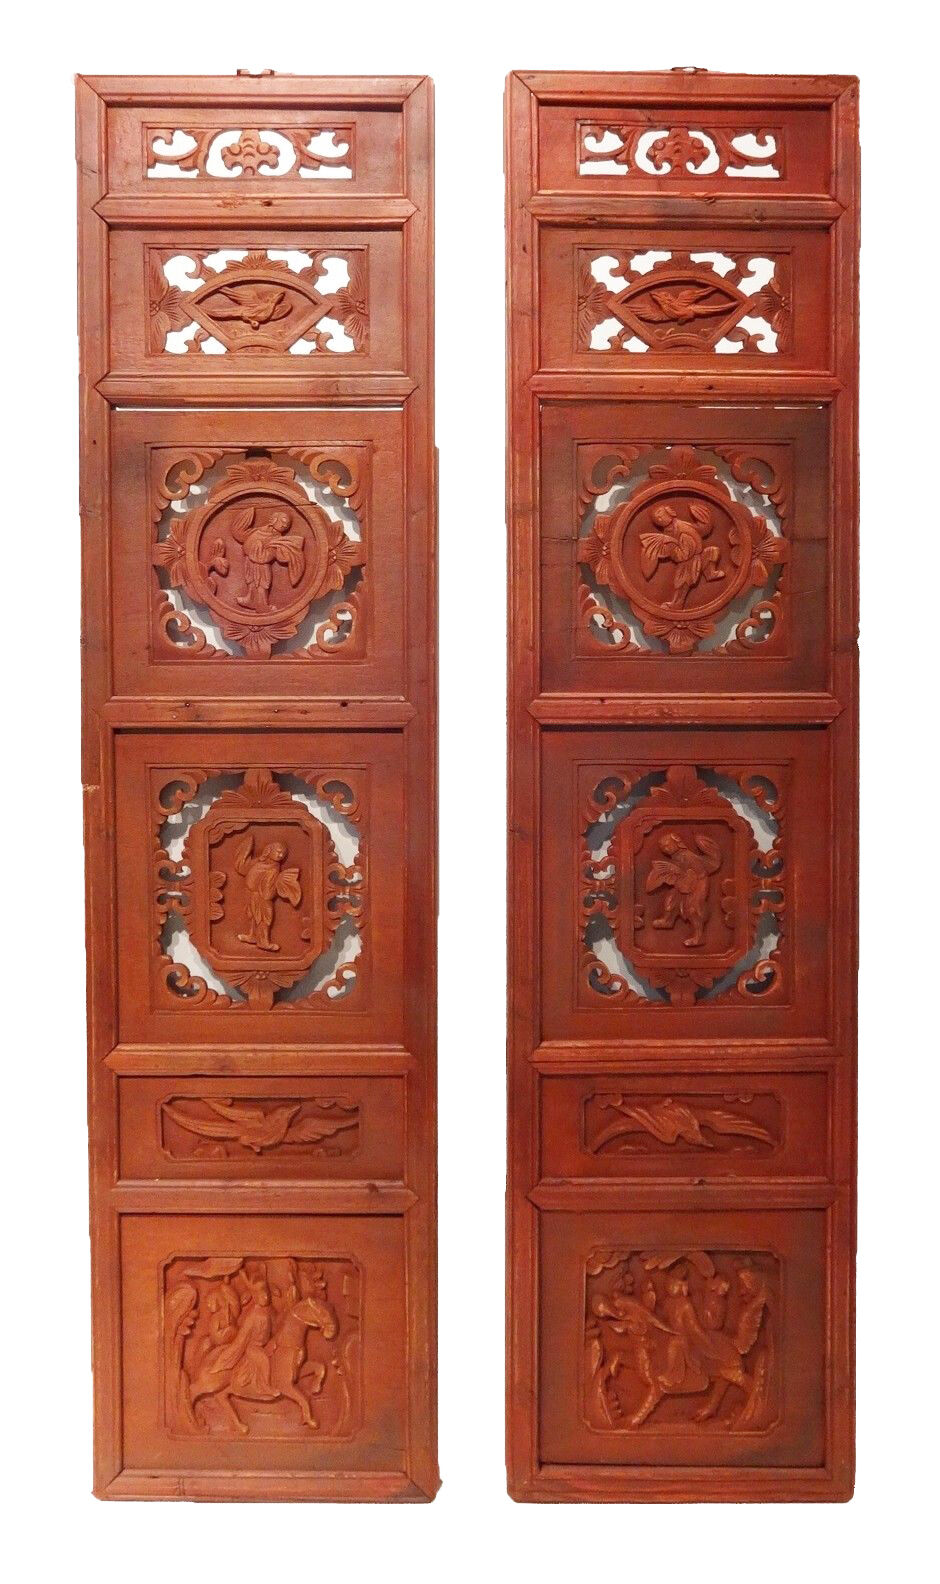 Superb Antique Carved Wood Chinese Wall Hangings/Shutters, Pair 54